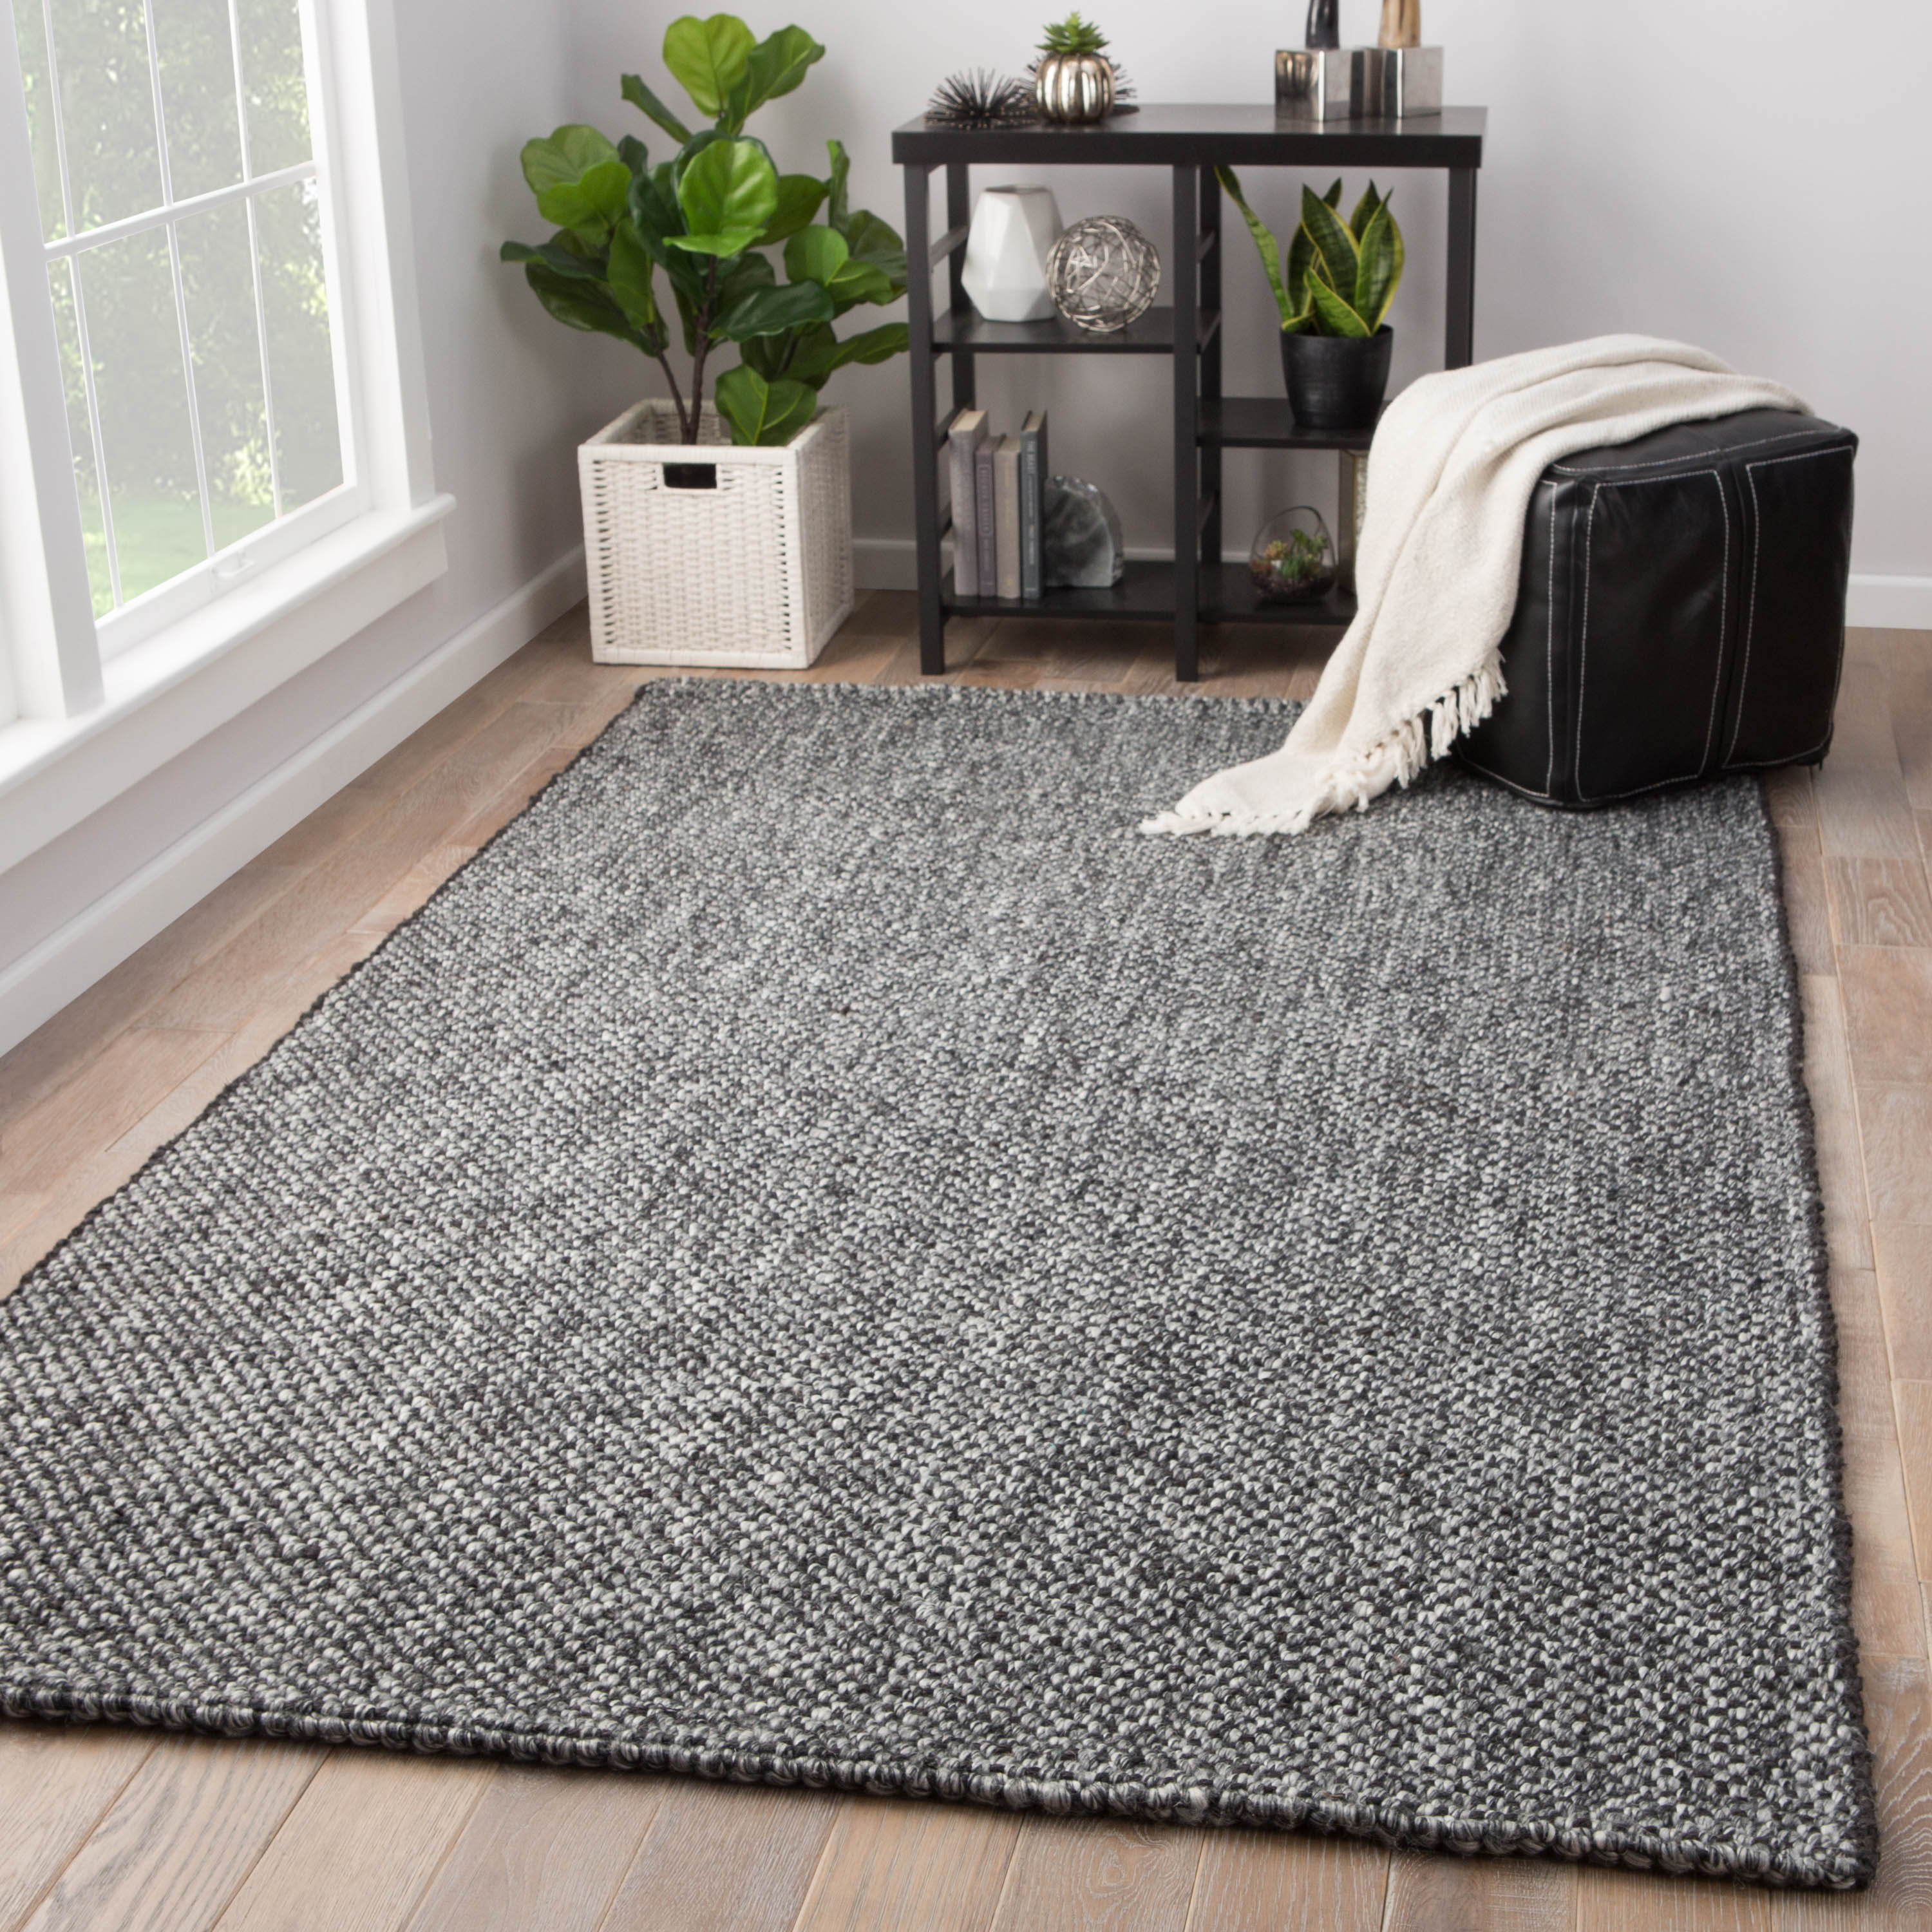 Topper Handmade Solid Black/ Gray Area Rug (5' X 8')